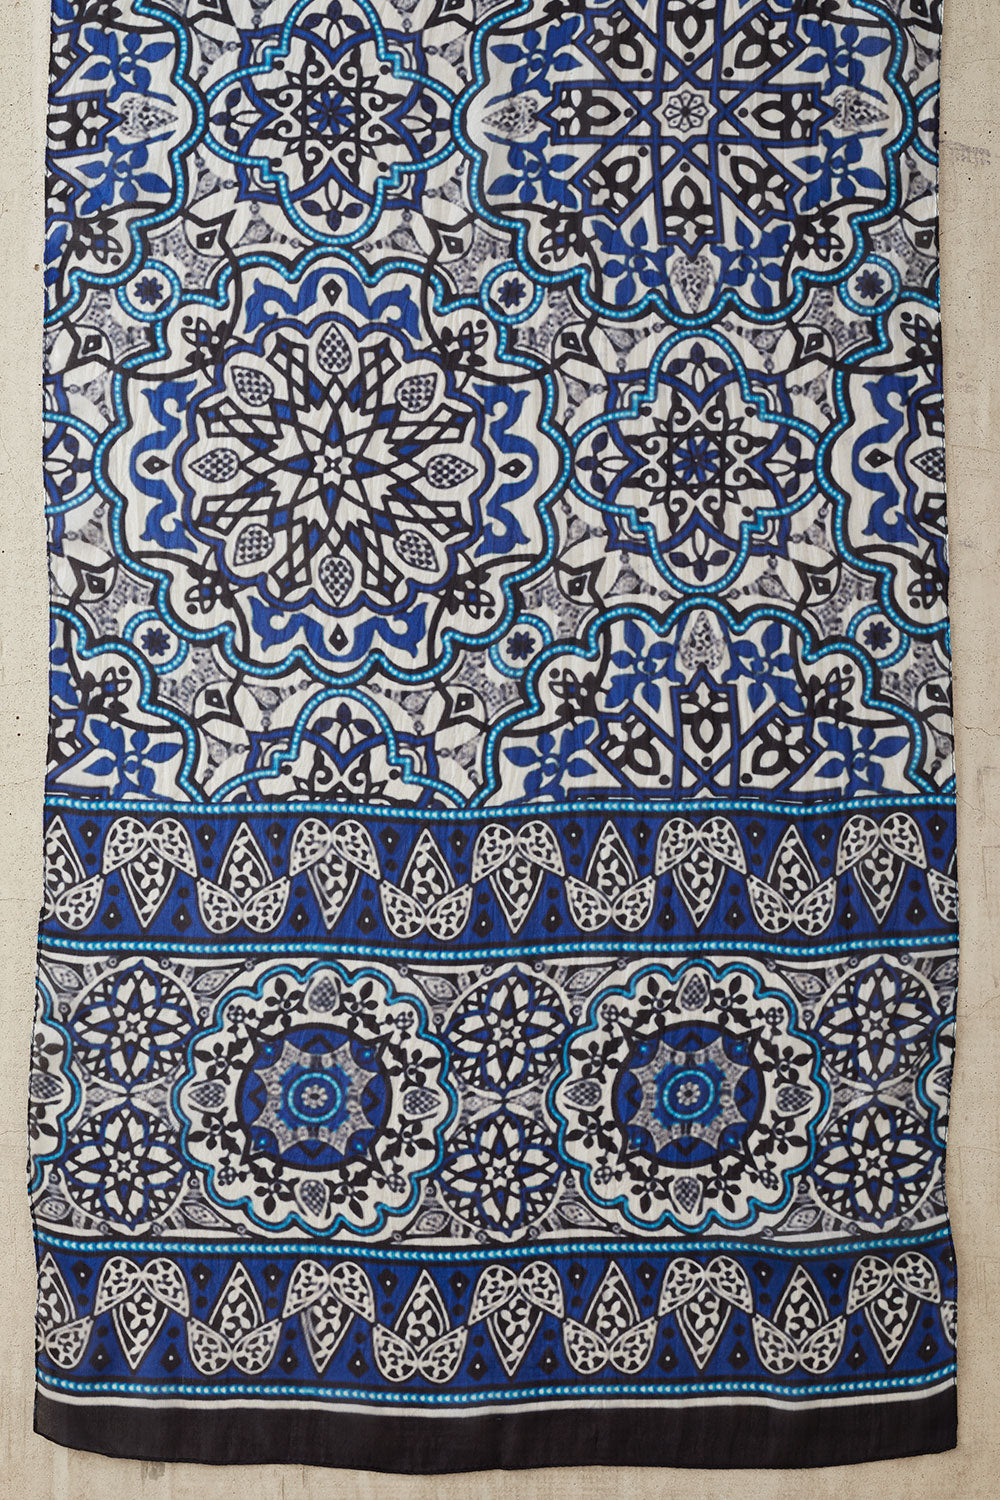 dupatta-designs-fair-trade-casablanca-silk-scarf